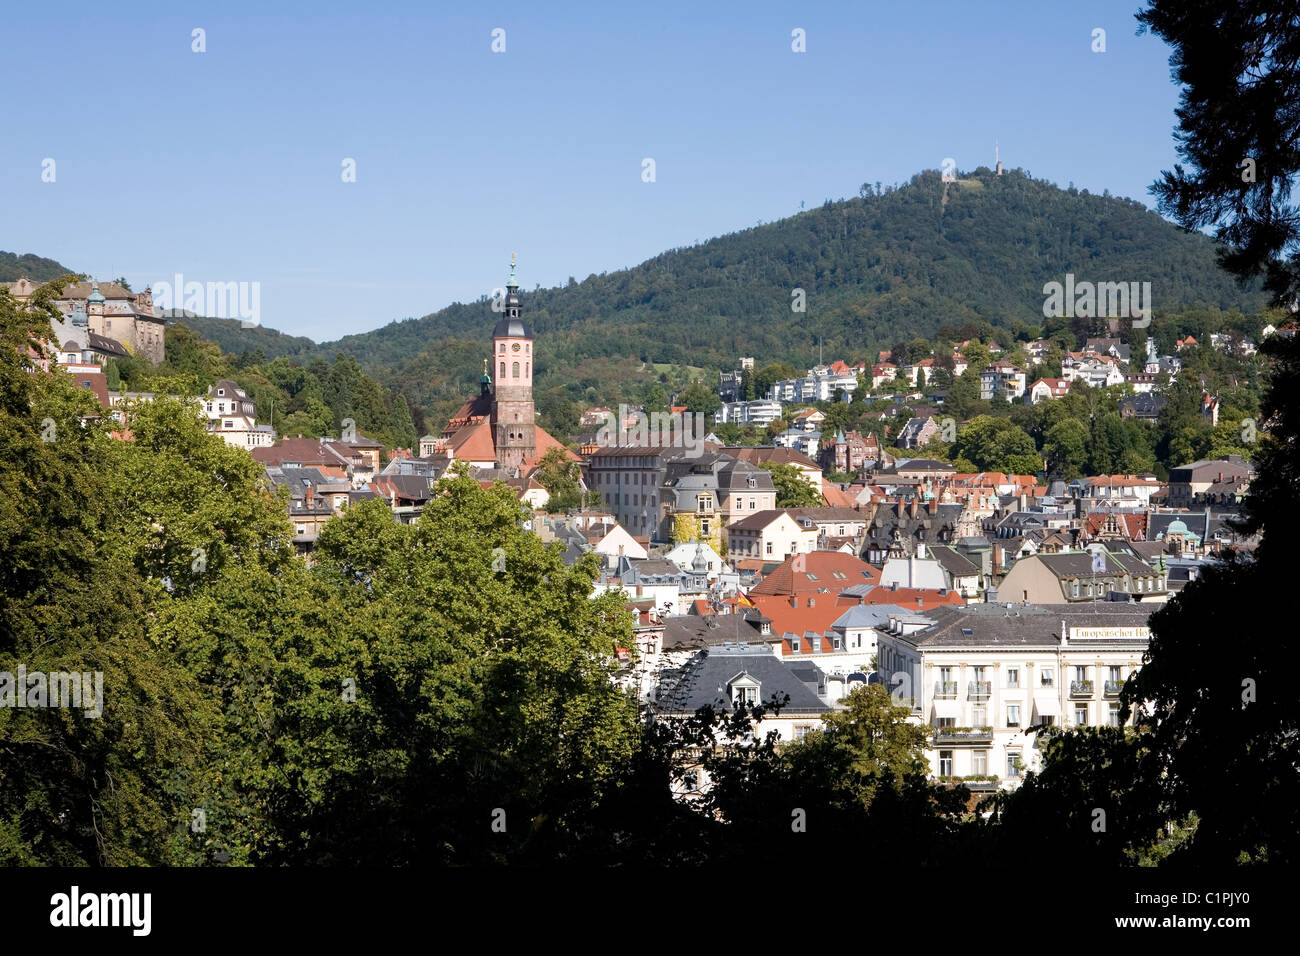 Germany, Bavaria, Baden, town in valley below mountain - Stock Image